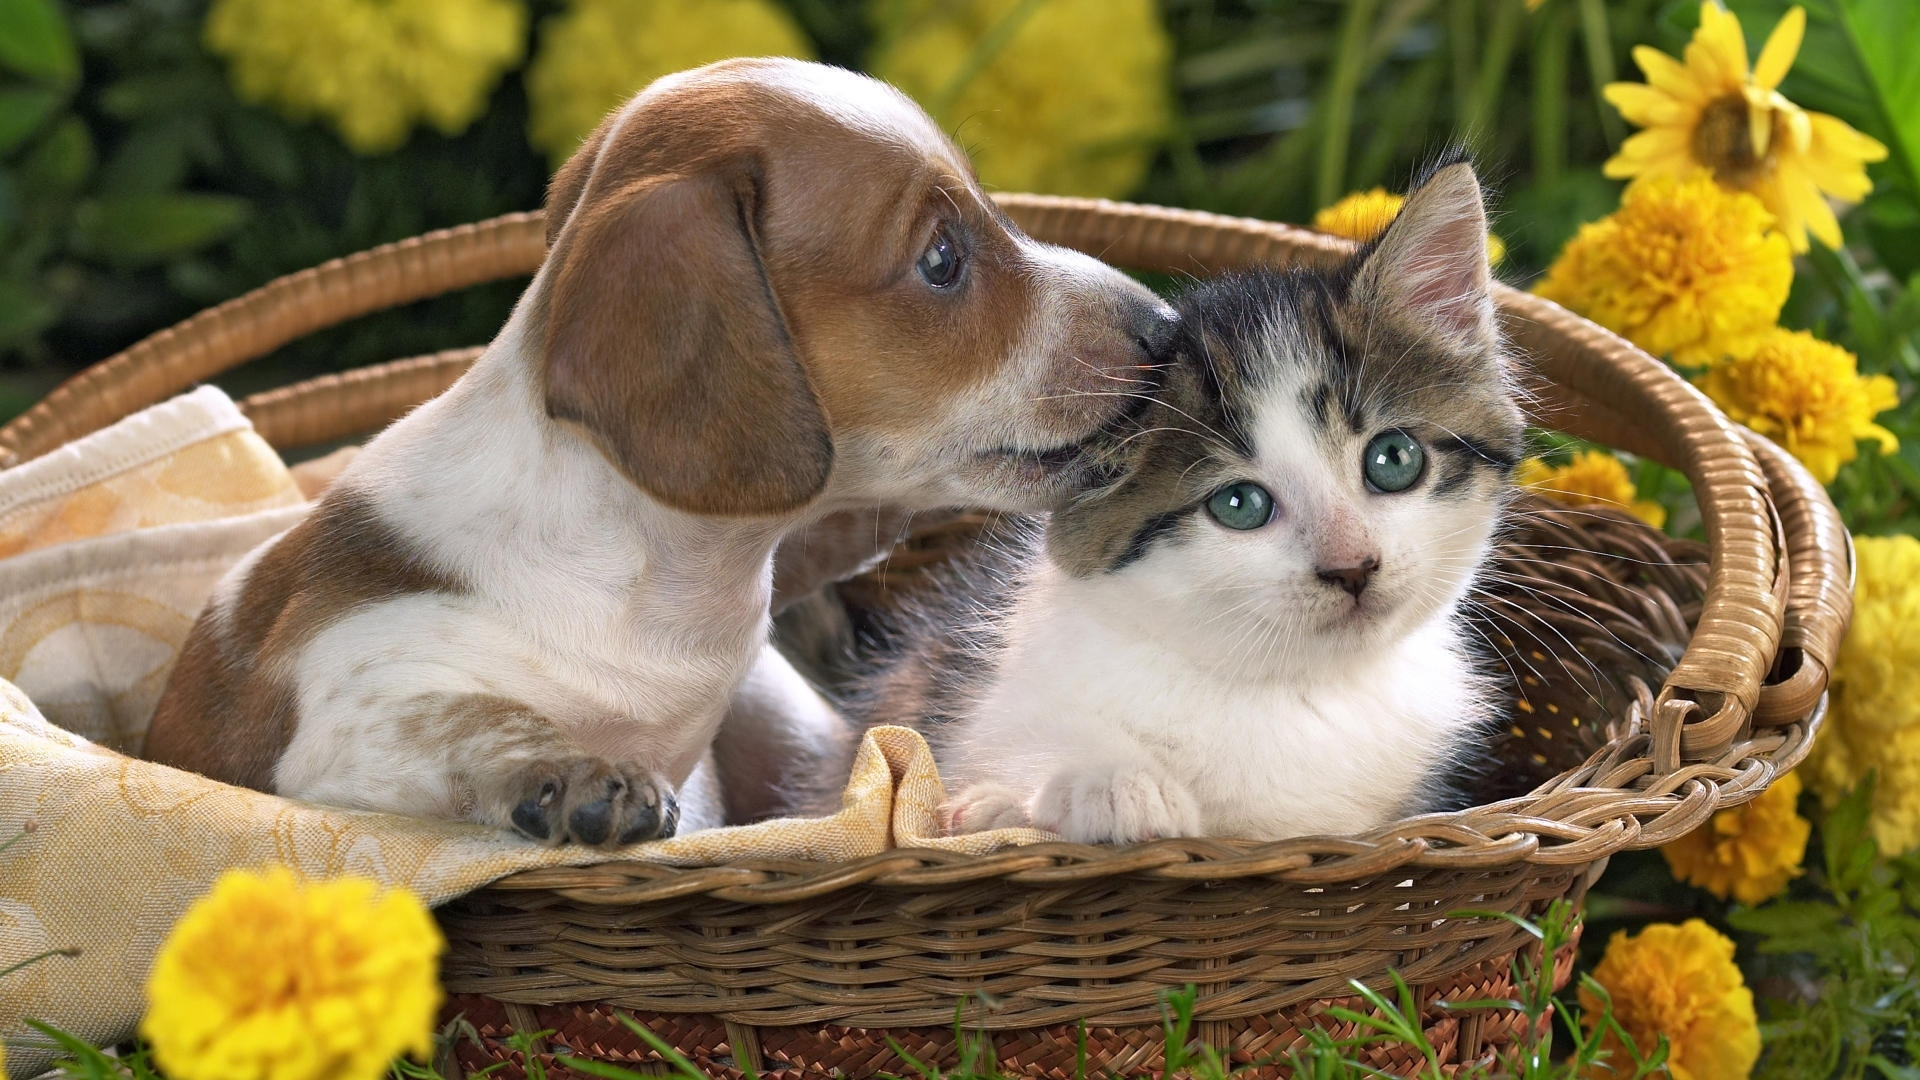 45293 download wallpaper Animals, Cats, Dogs screensavers and pictures for free